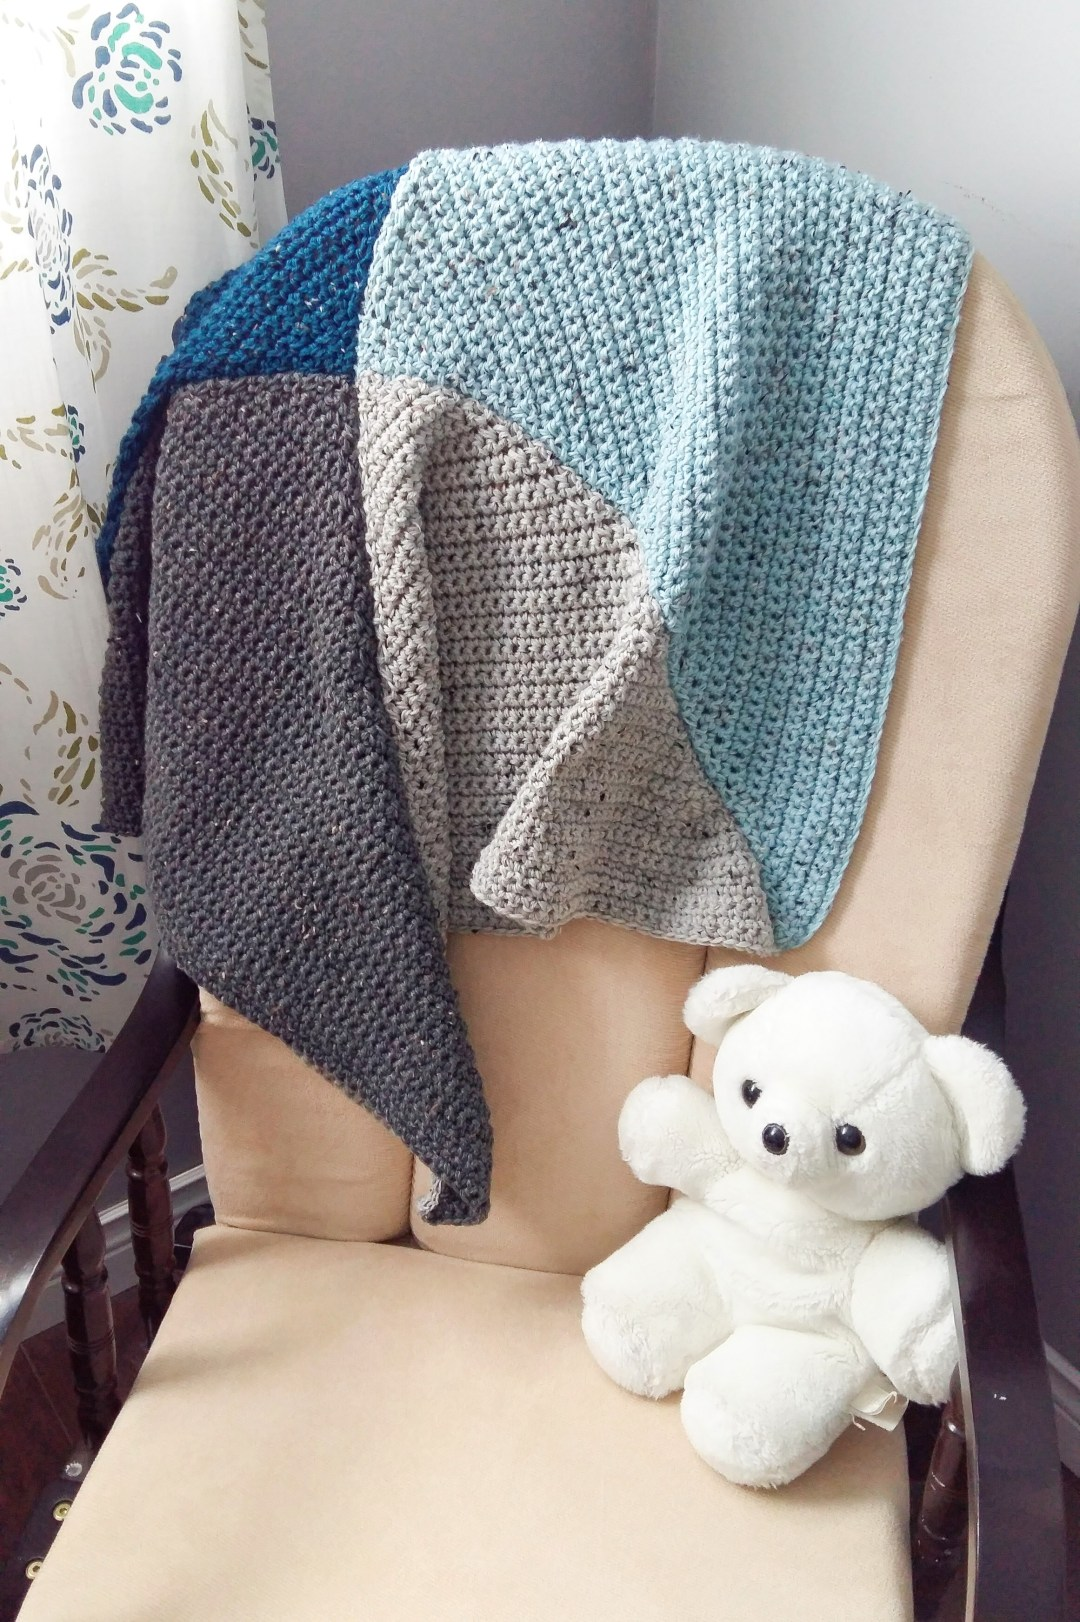 Looking for a simple but thoughtful baby shower gift? This easy crochet baby blanket is just the ticket! Tutorial includes free pattern.